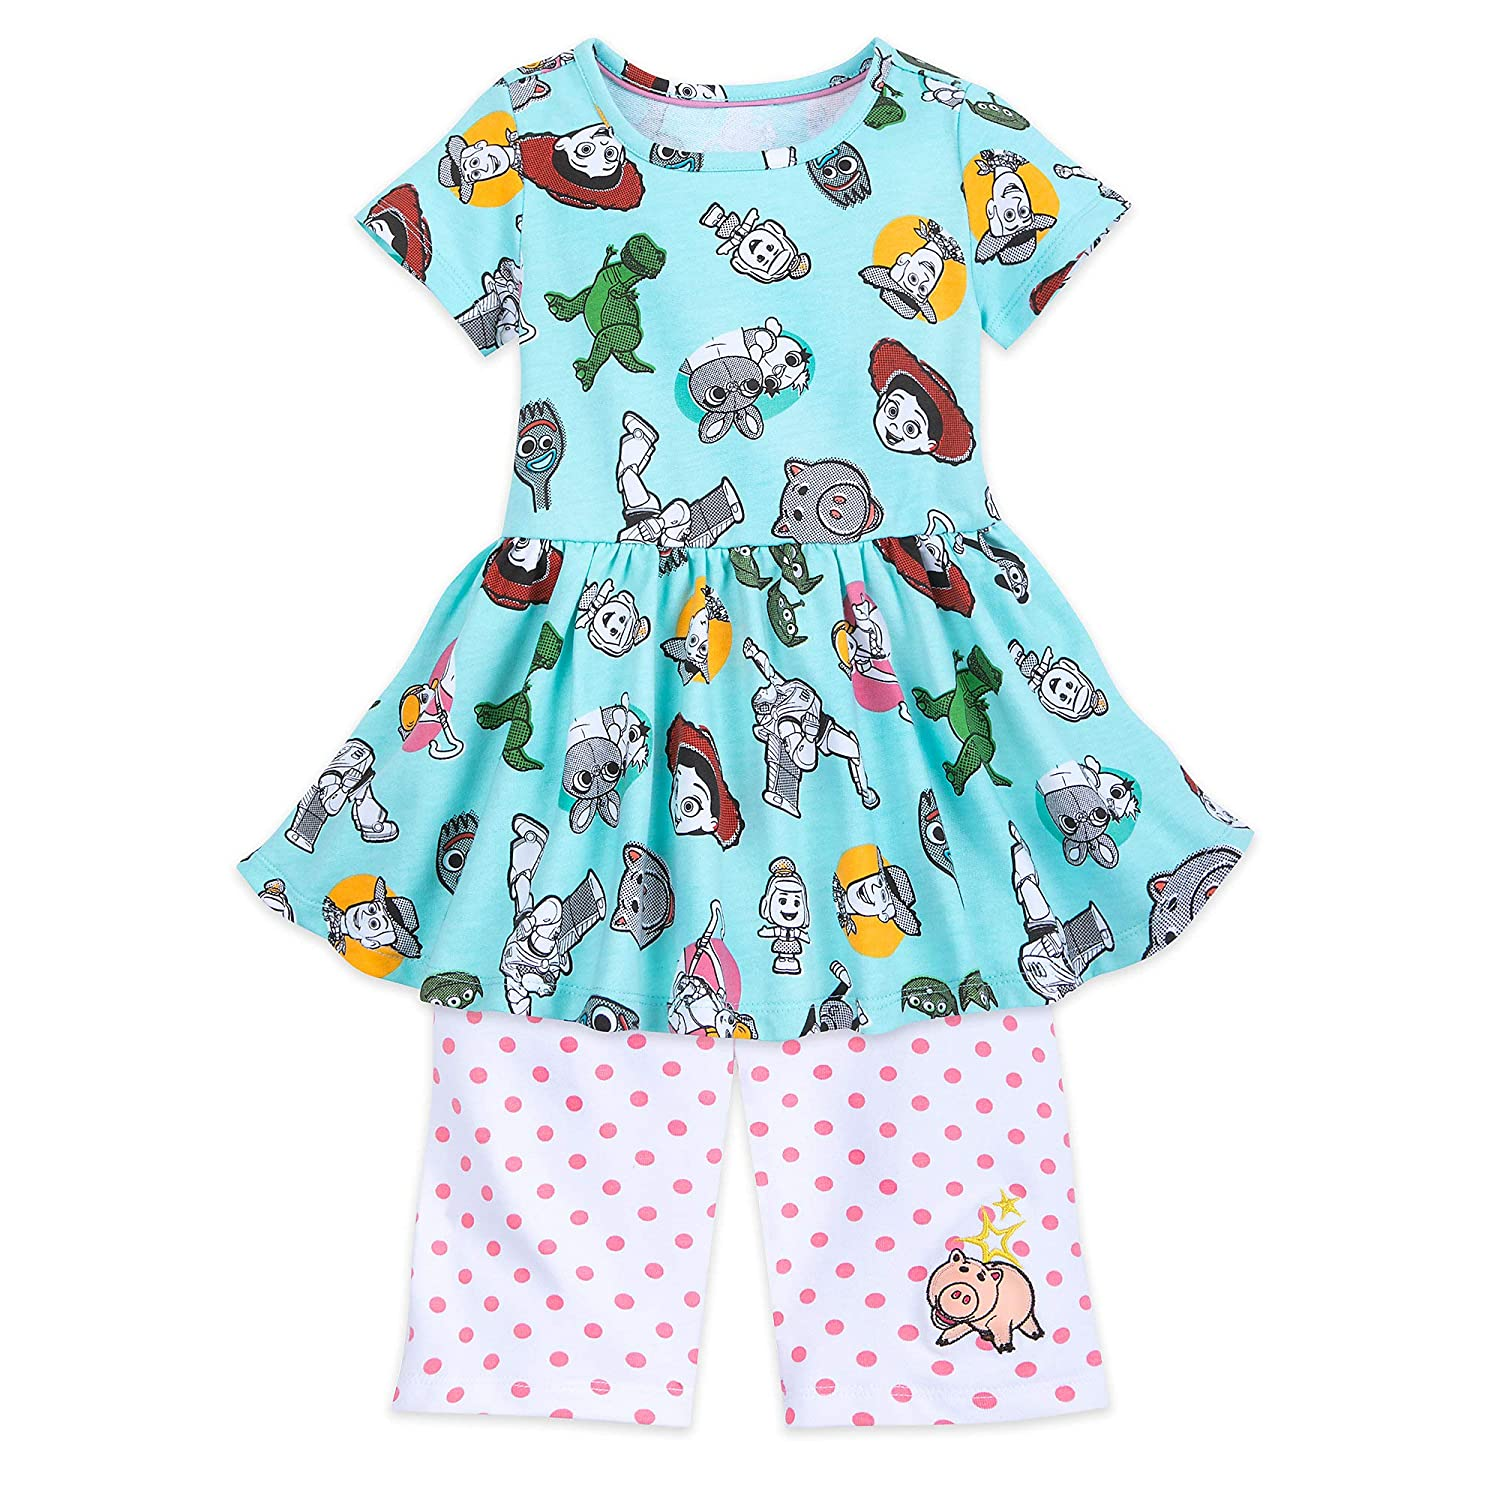 Disney Toy Story 4 Knit Top and Shorts Set for Girls Multi